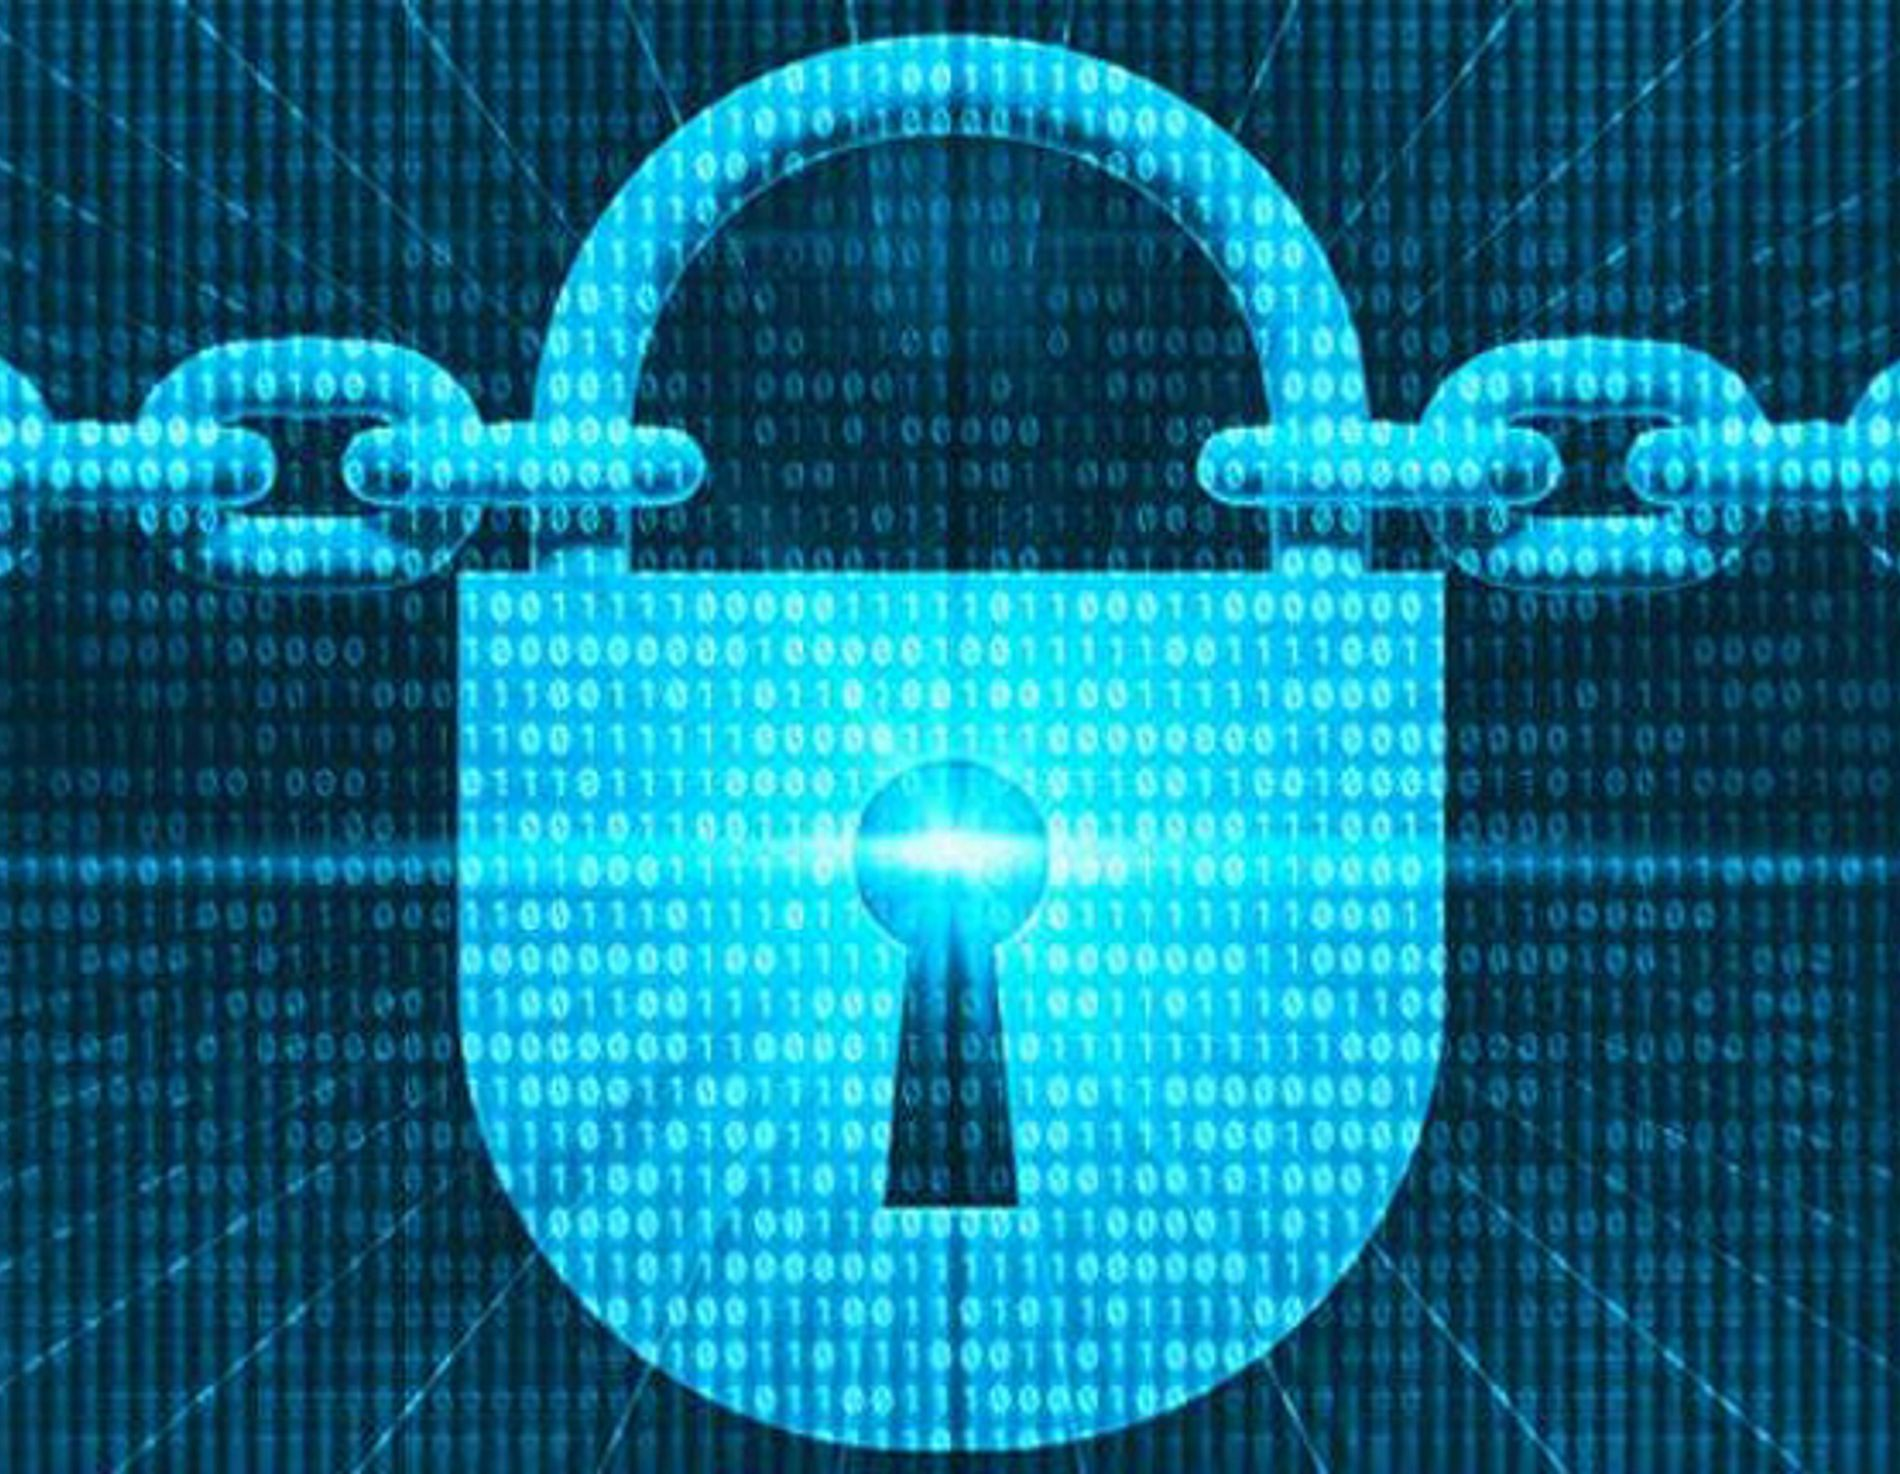 Electronic image of a pad lock holding chain links together